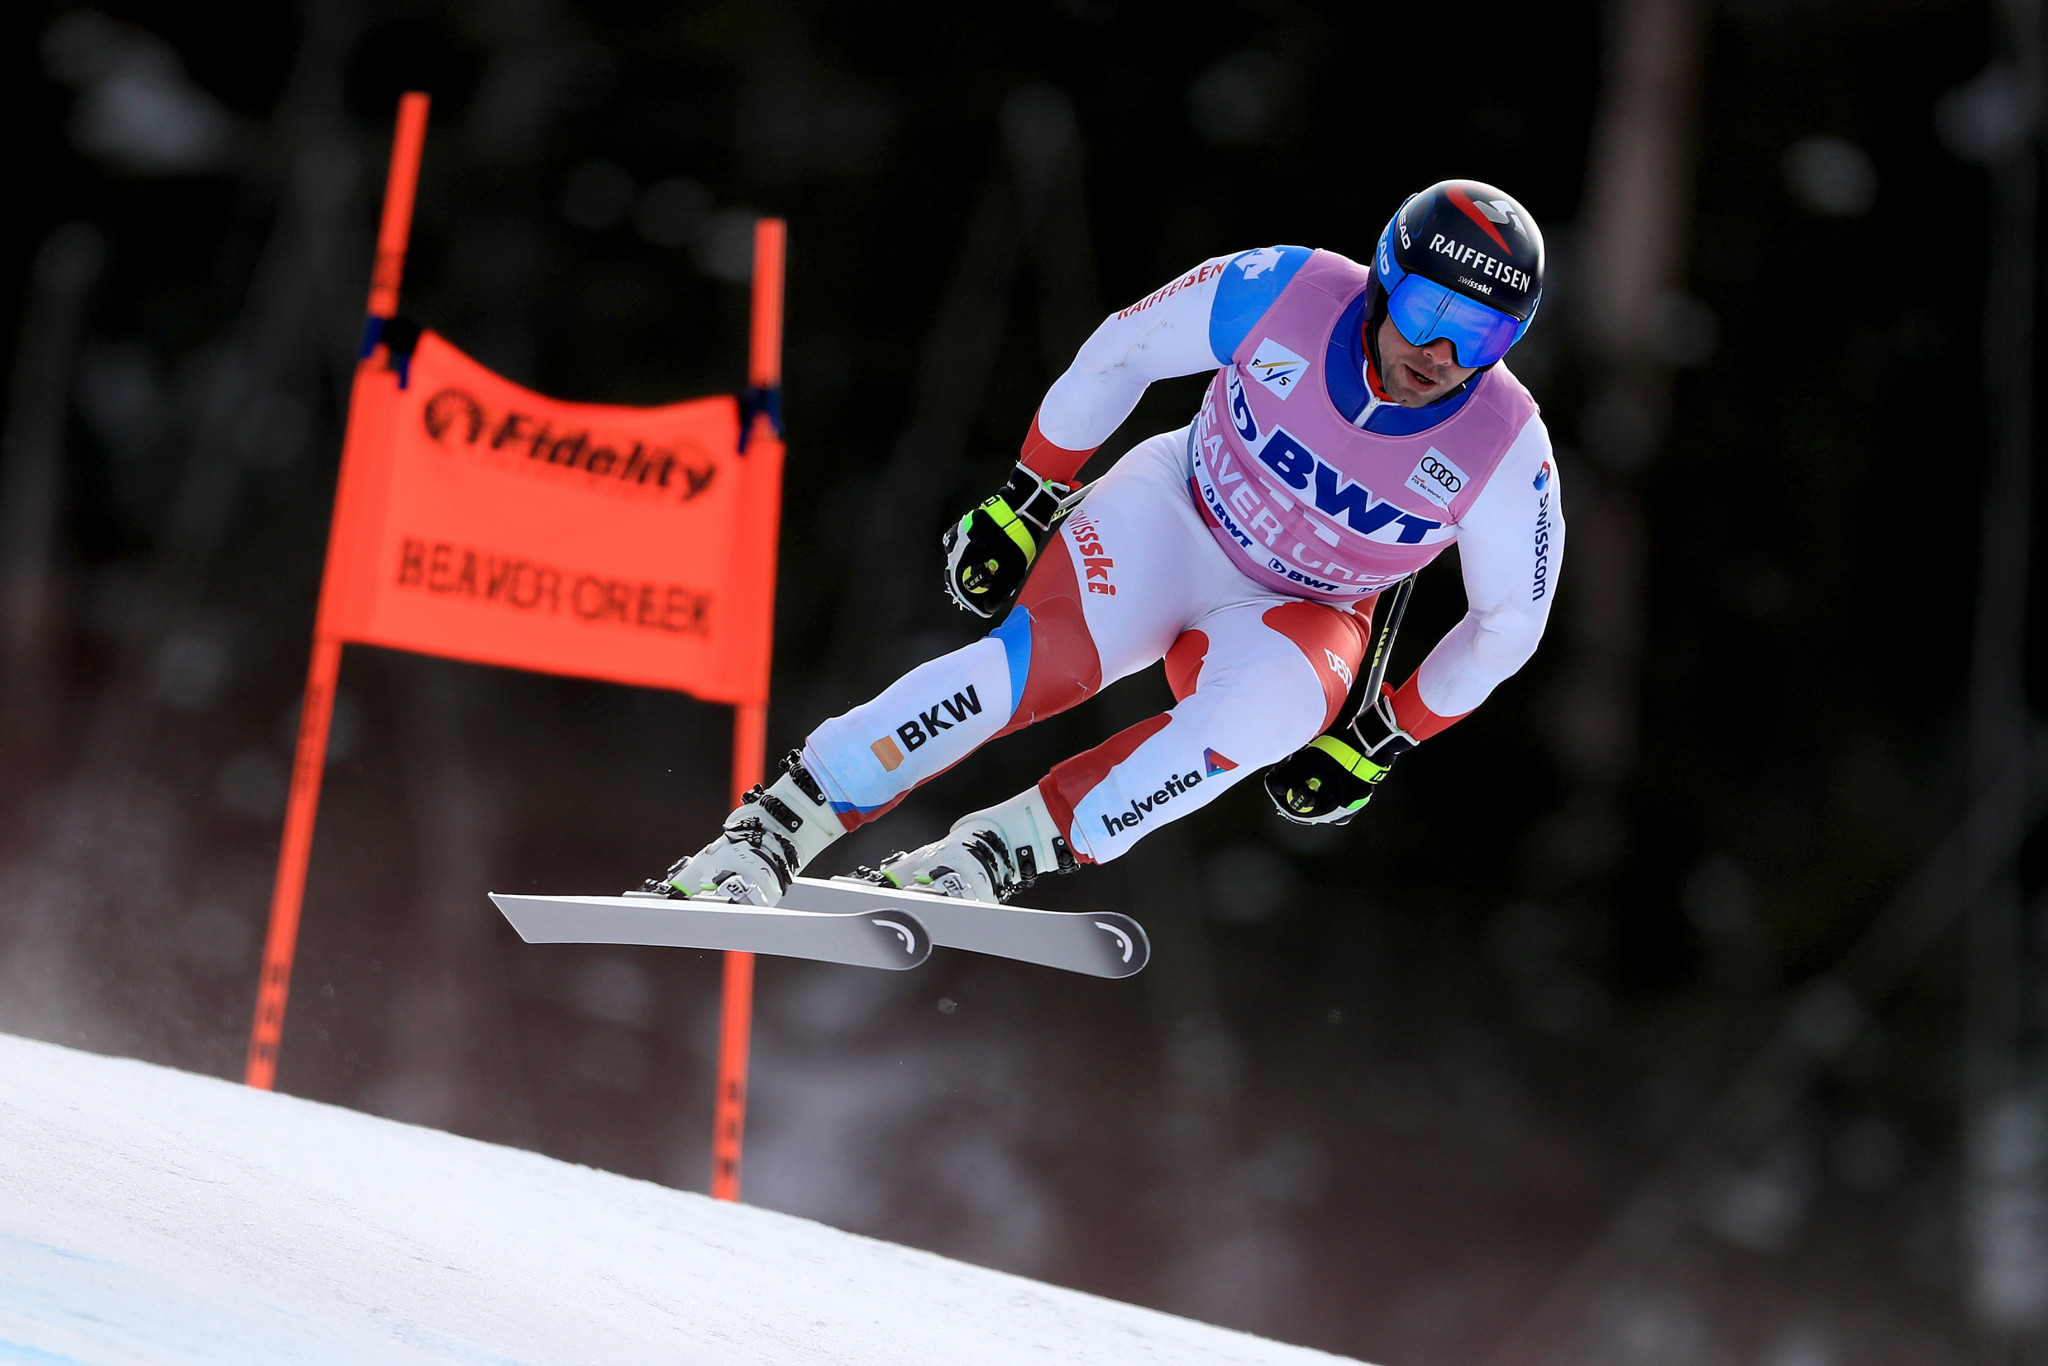 Beat Feuz of Switzerland is considered one of the favourites in the downhill competition ©Getty Images